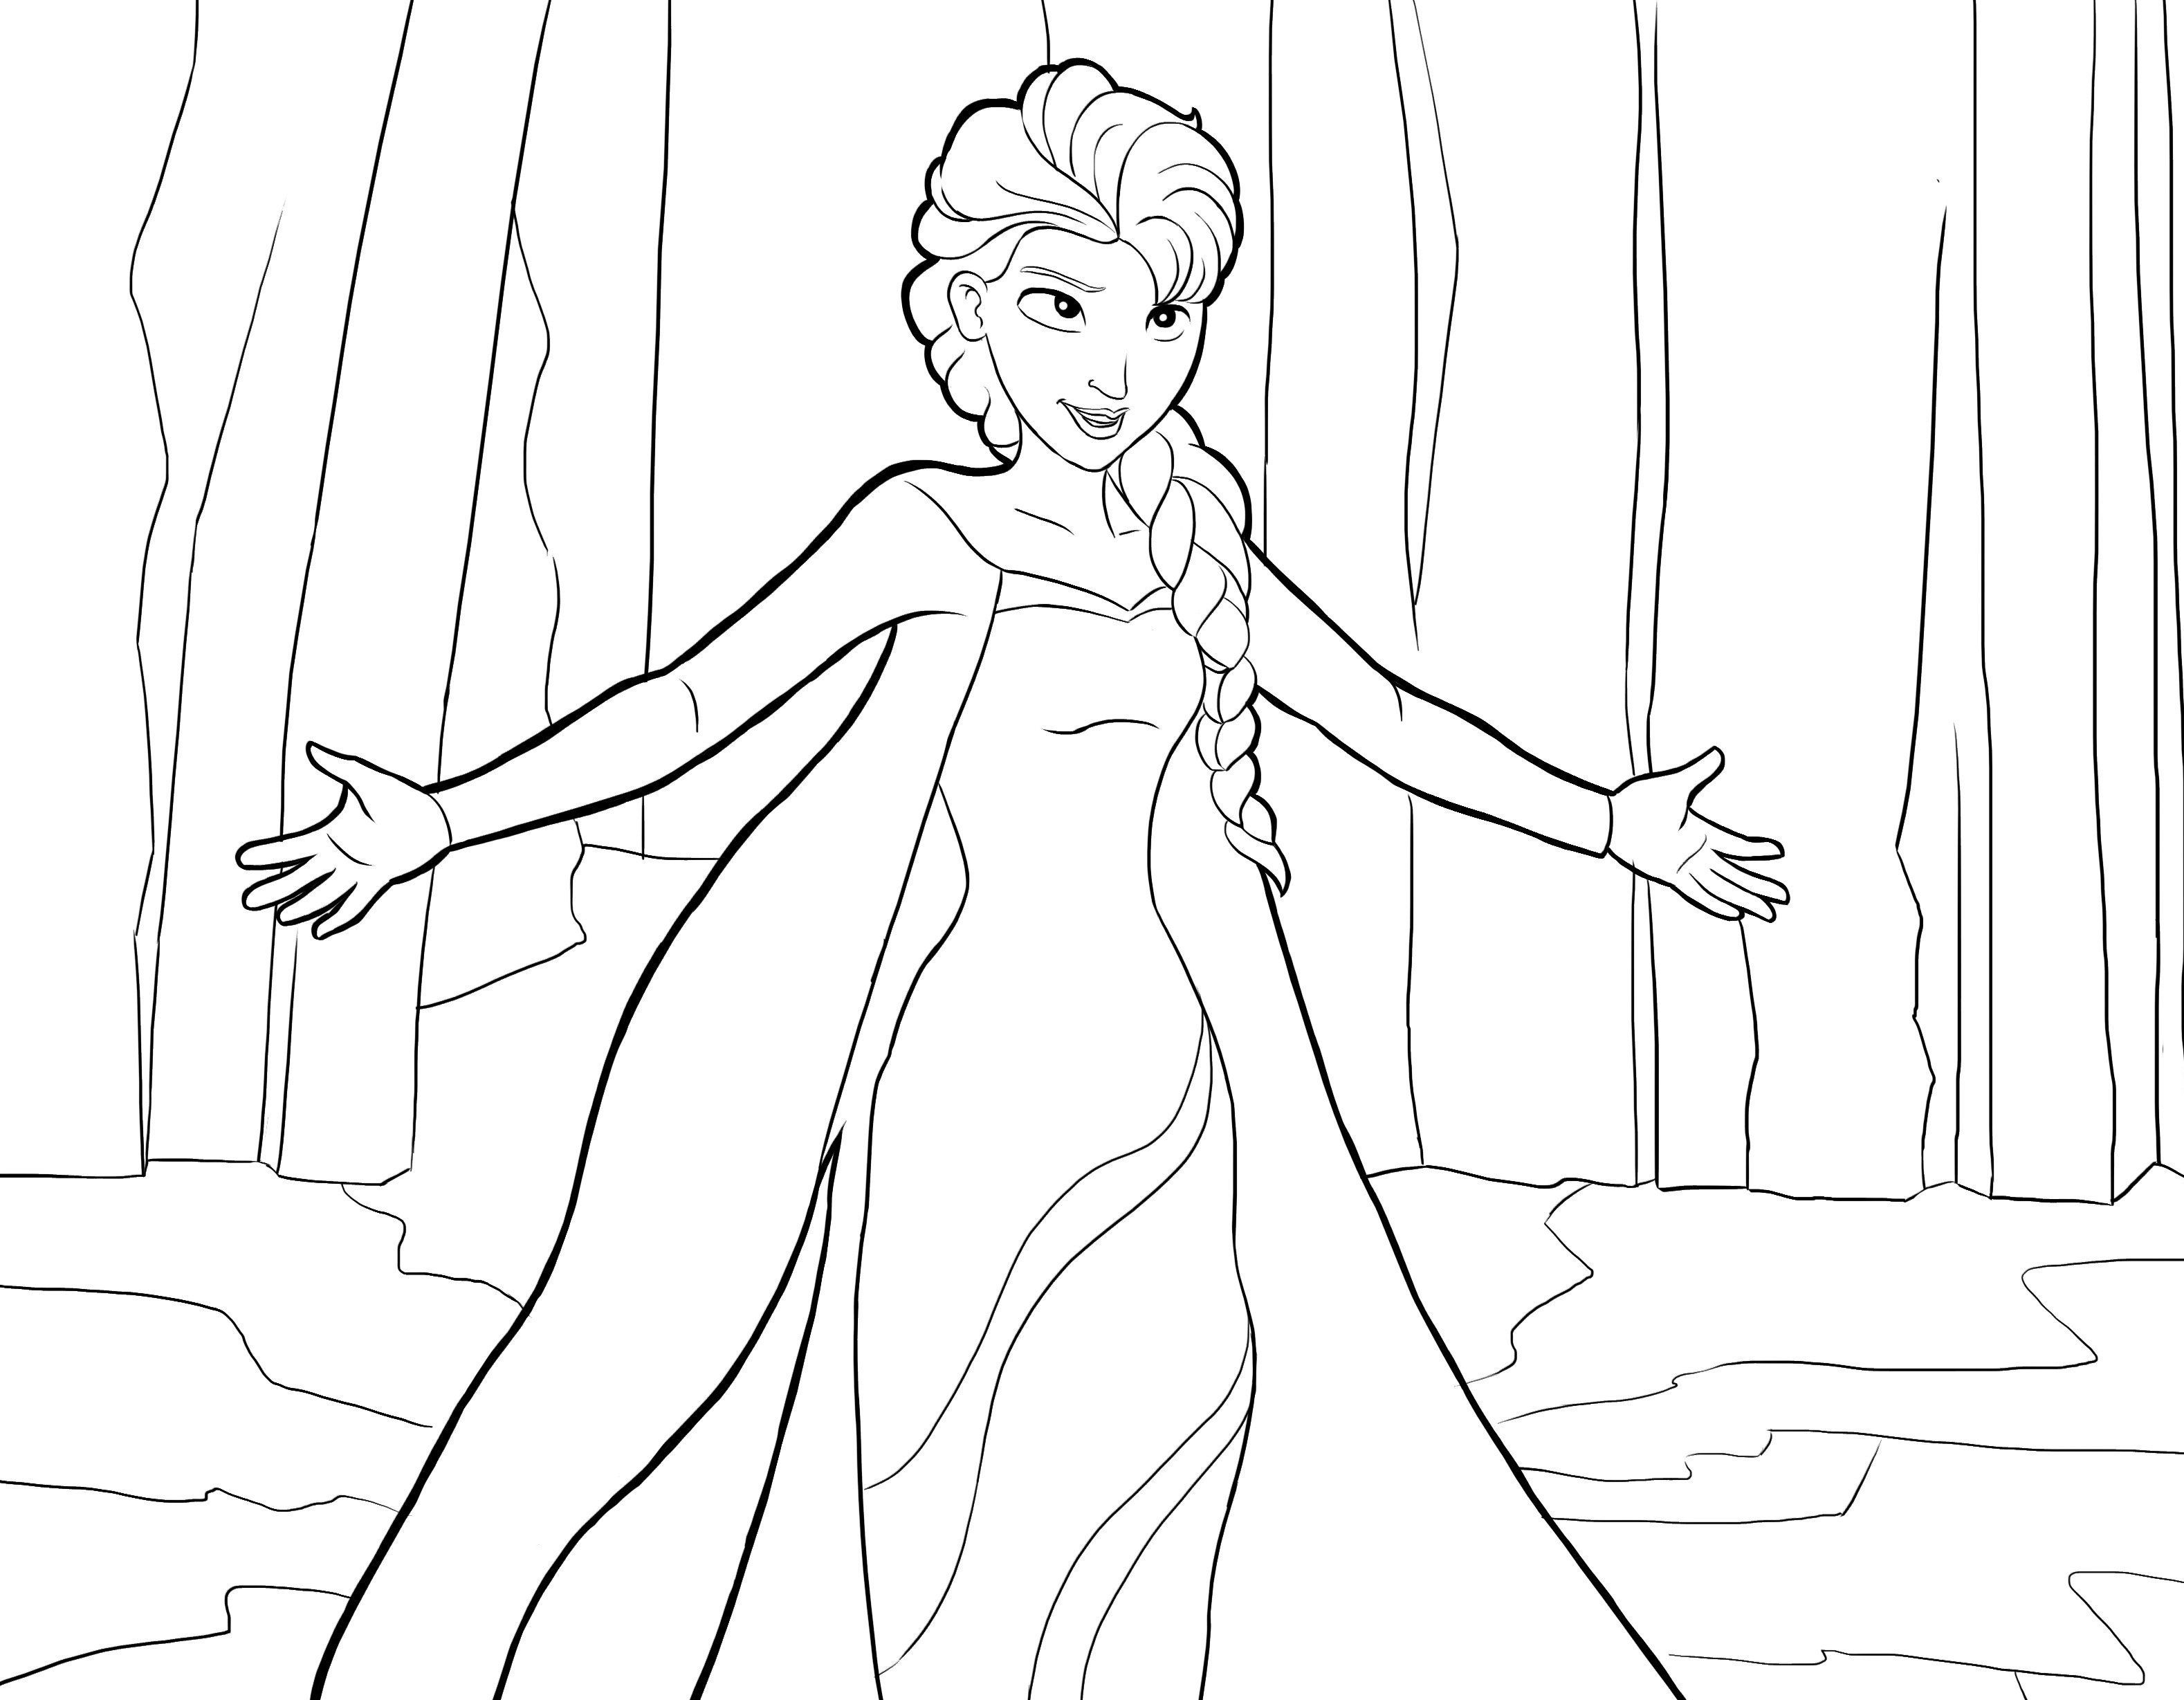 Queen Elsa Of Arendelle Also Known As The Snow Queen Is A Fictional Character Who Appears In Walt D Frozen Coloring Pages Elsa Coloring Pages Frozen Coloring